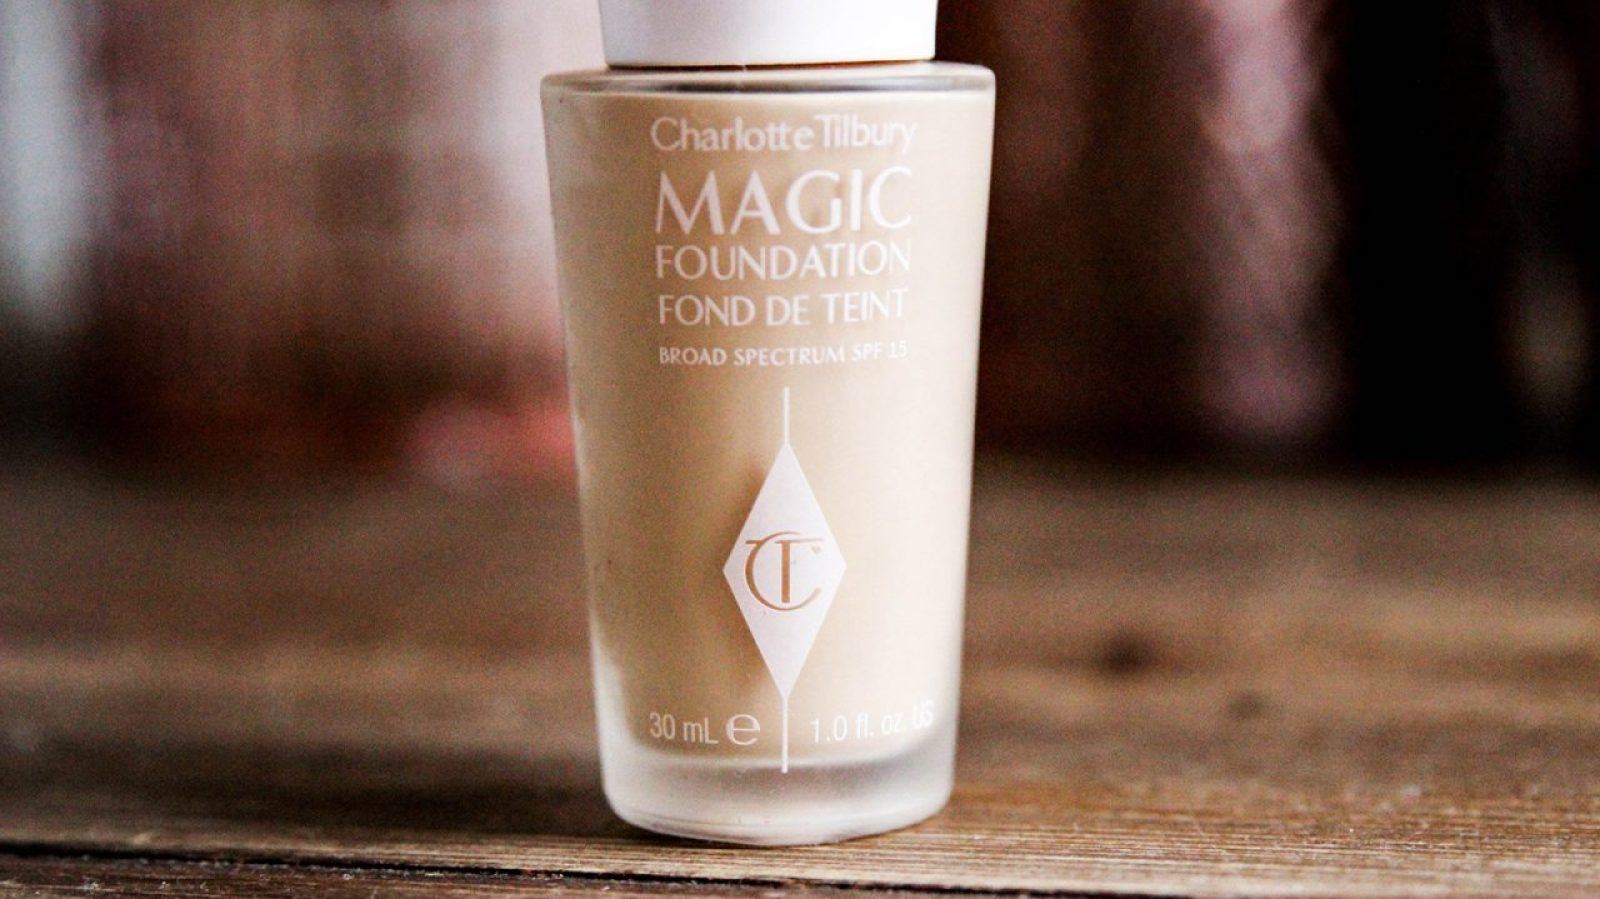 Charlotte Tilbury Magic Foundation Fond de Teint-2